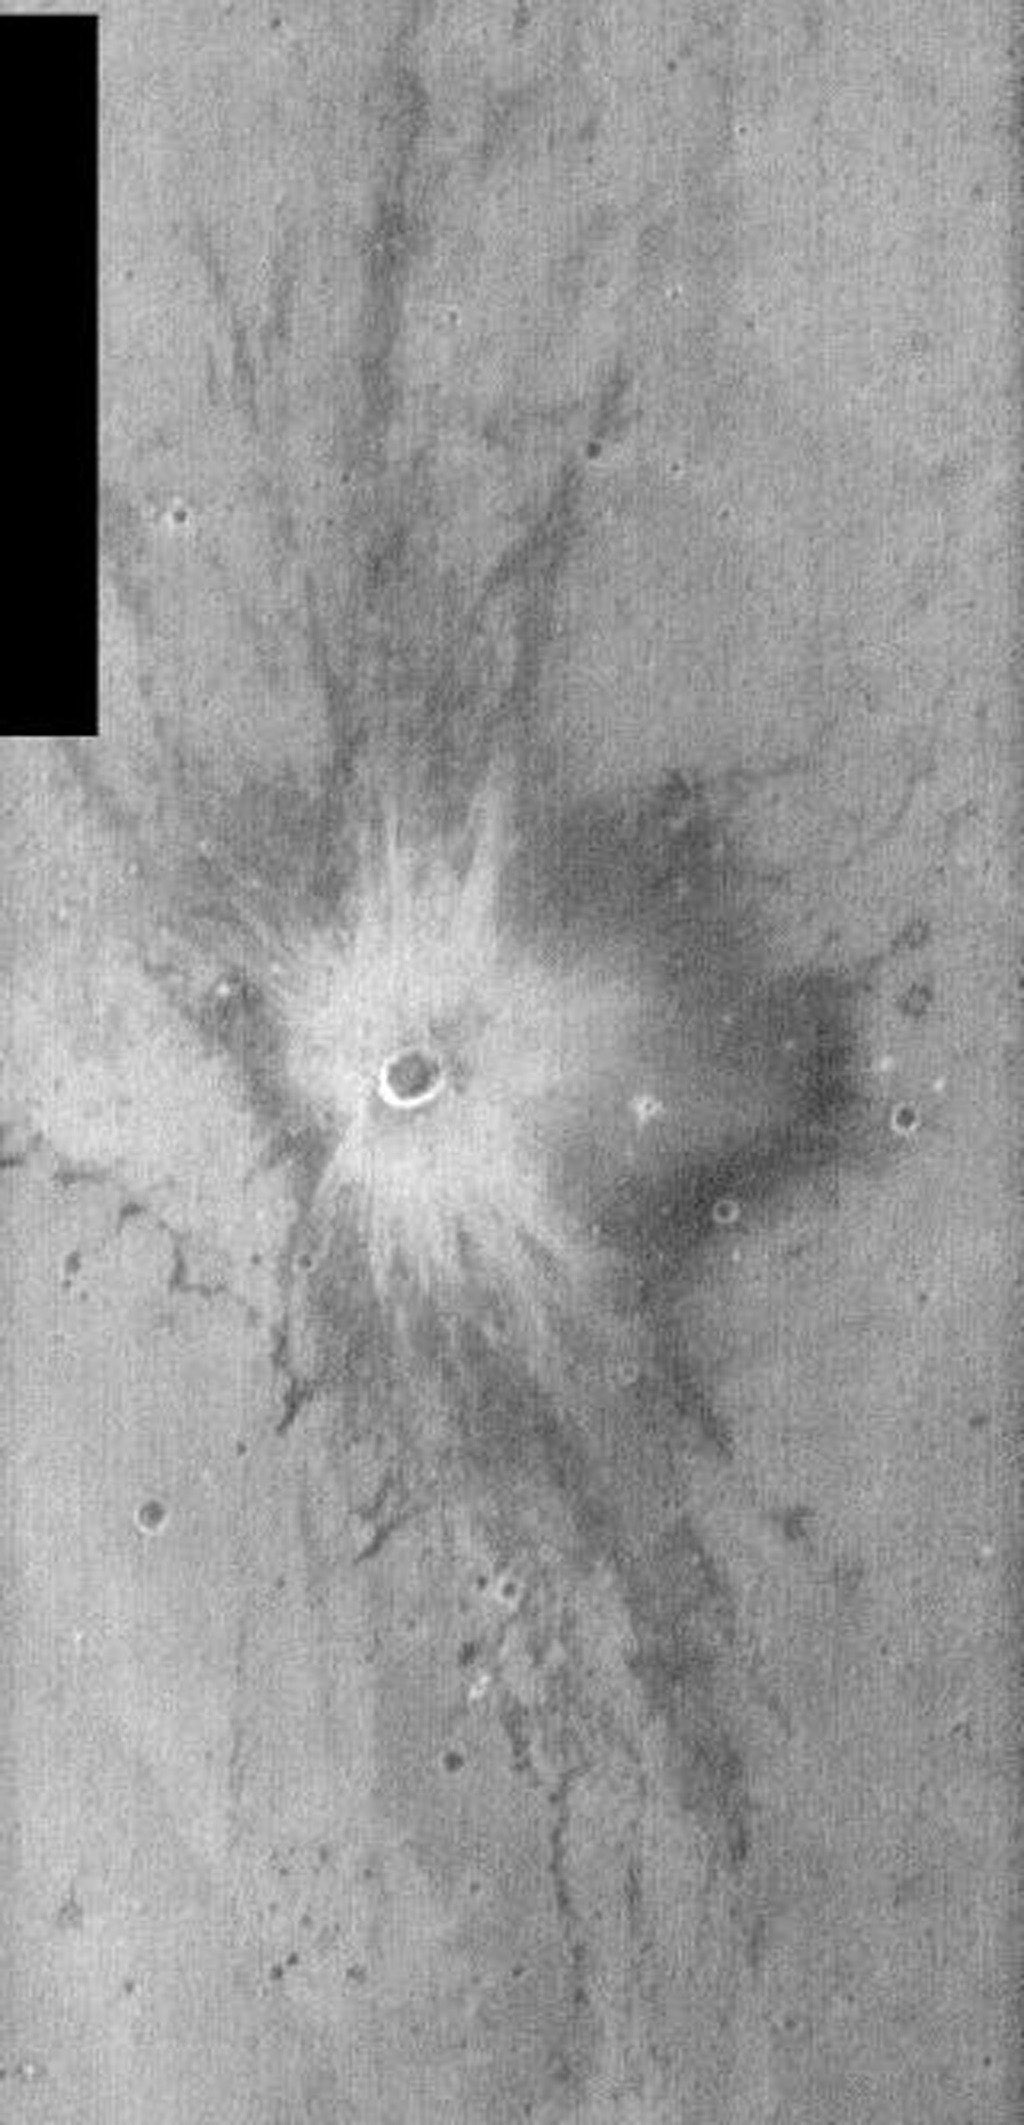 This image, part of an images as art series from NASA's 2001 Mars Odyssey released on Feb 6, 2004 shows crater ejecta looks quite a bit like a blast, as would be seen in comic books or perhaps on an old episode of Batman.